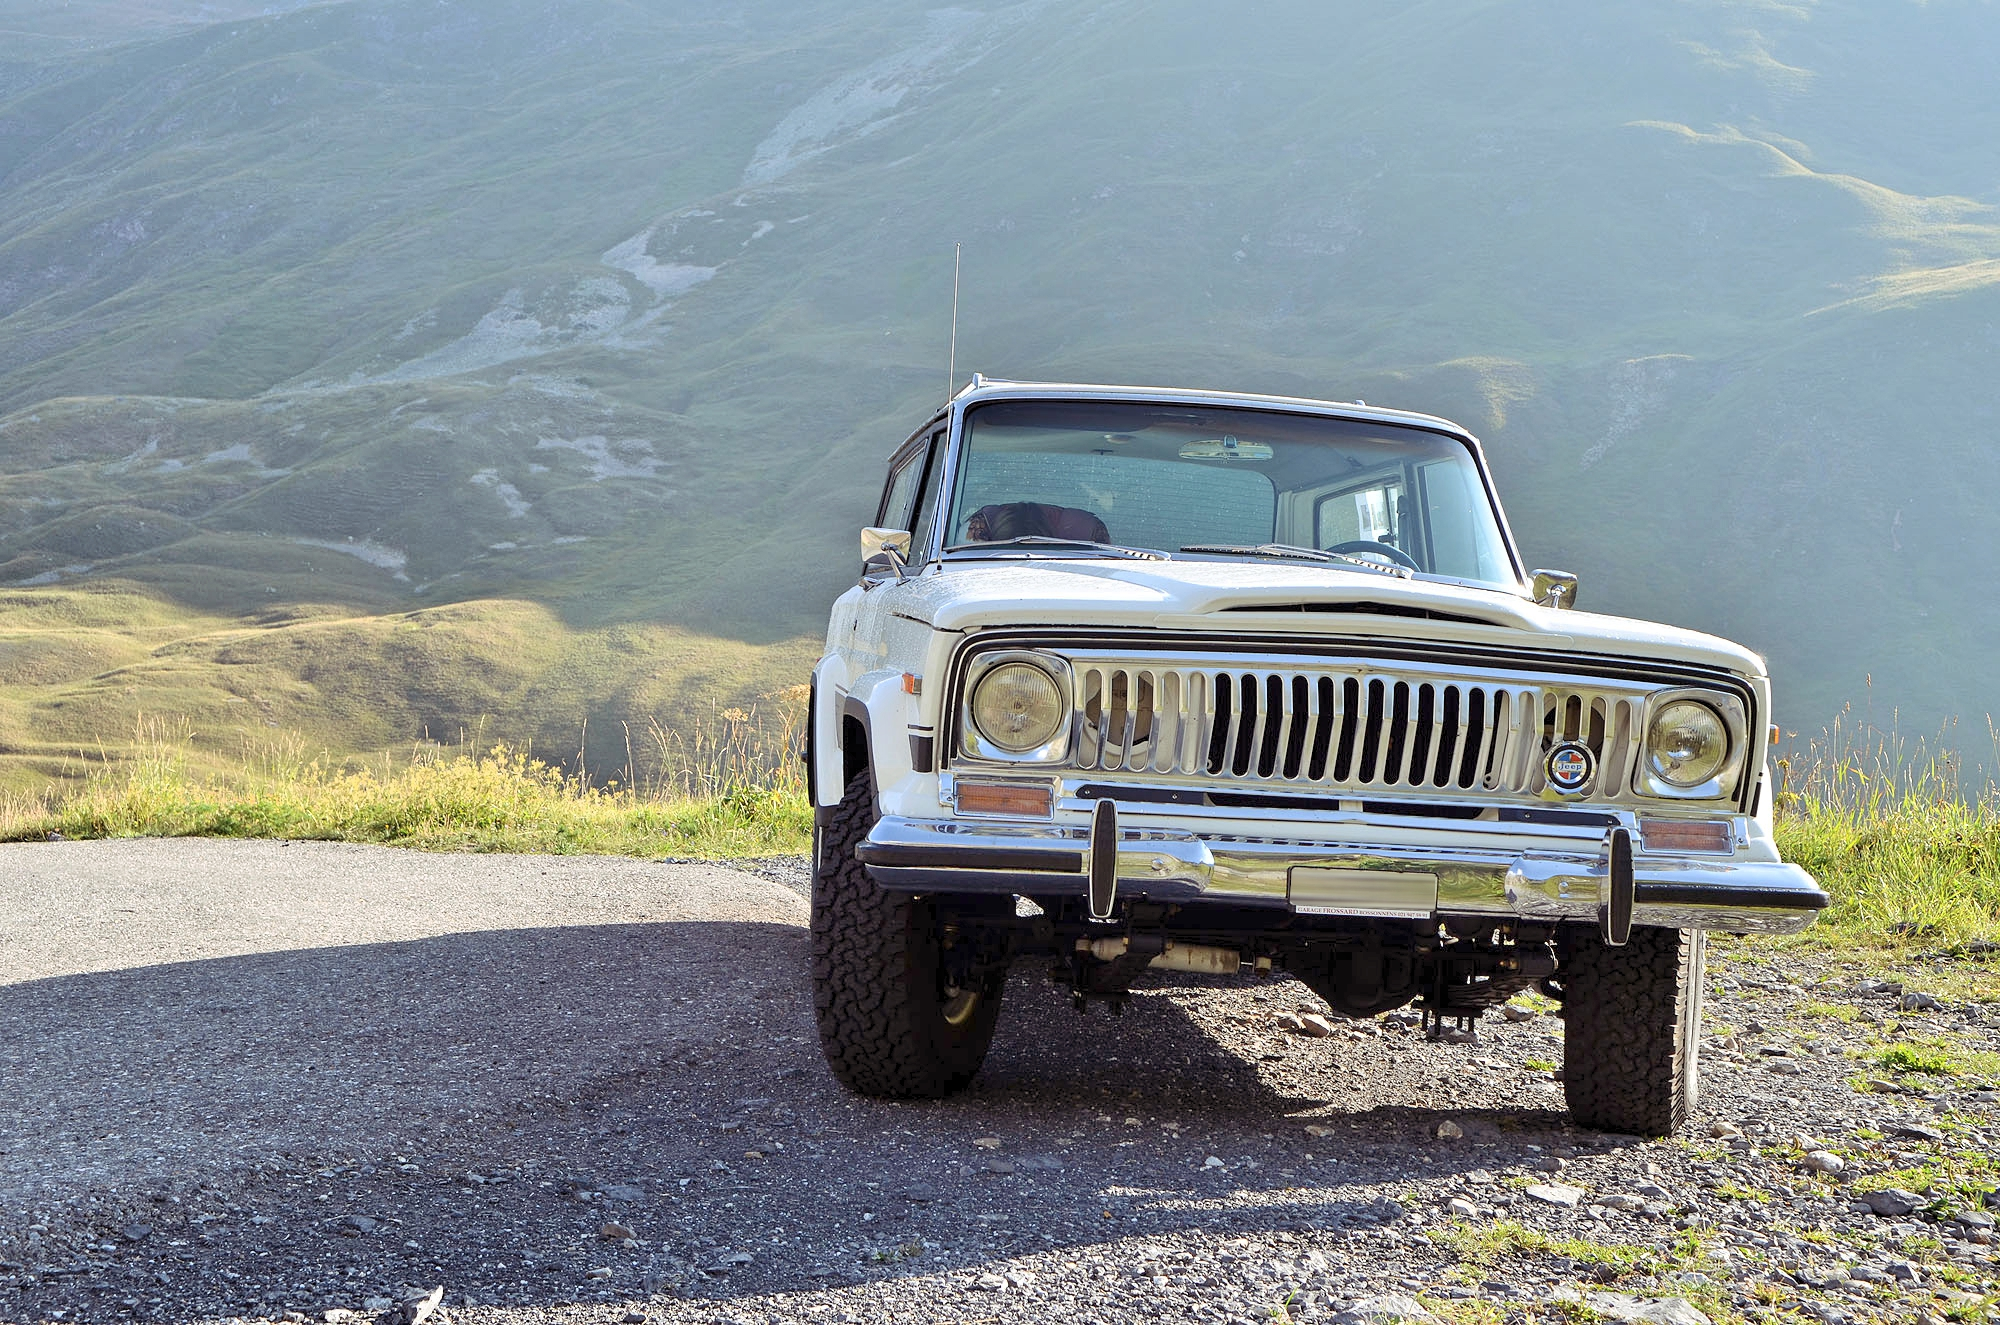 Jeep-Cherokee-Chief-restored-1978-shooting-france